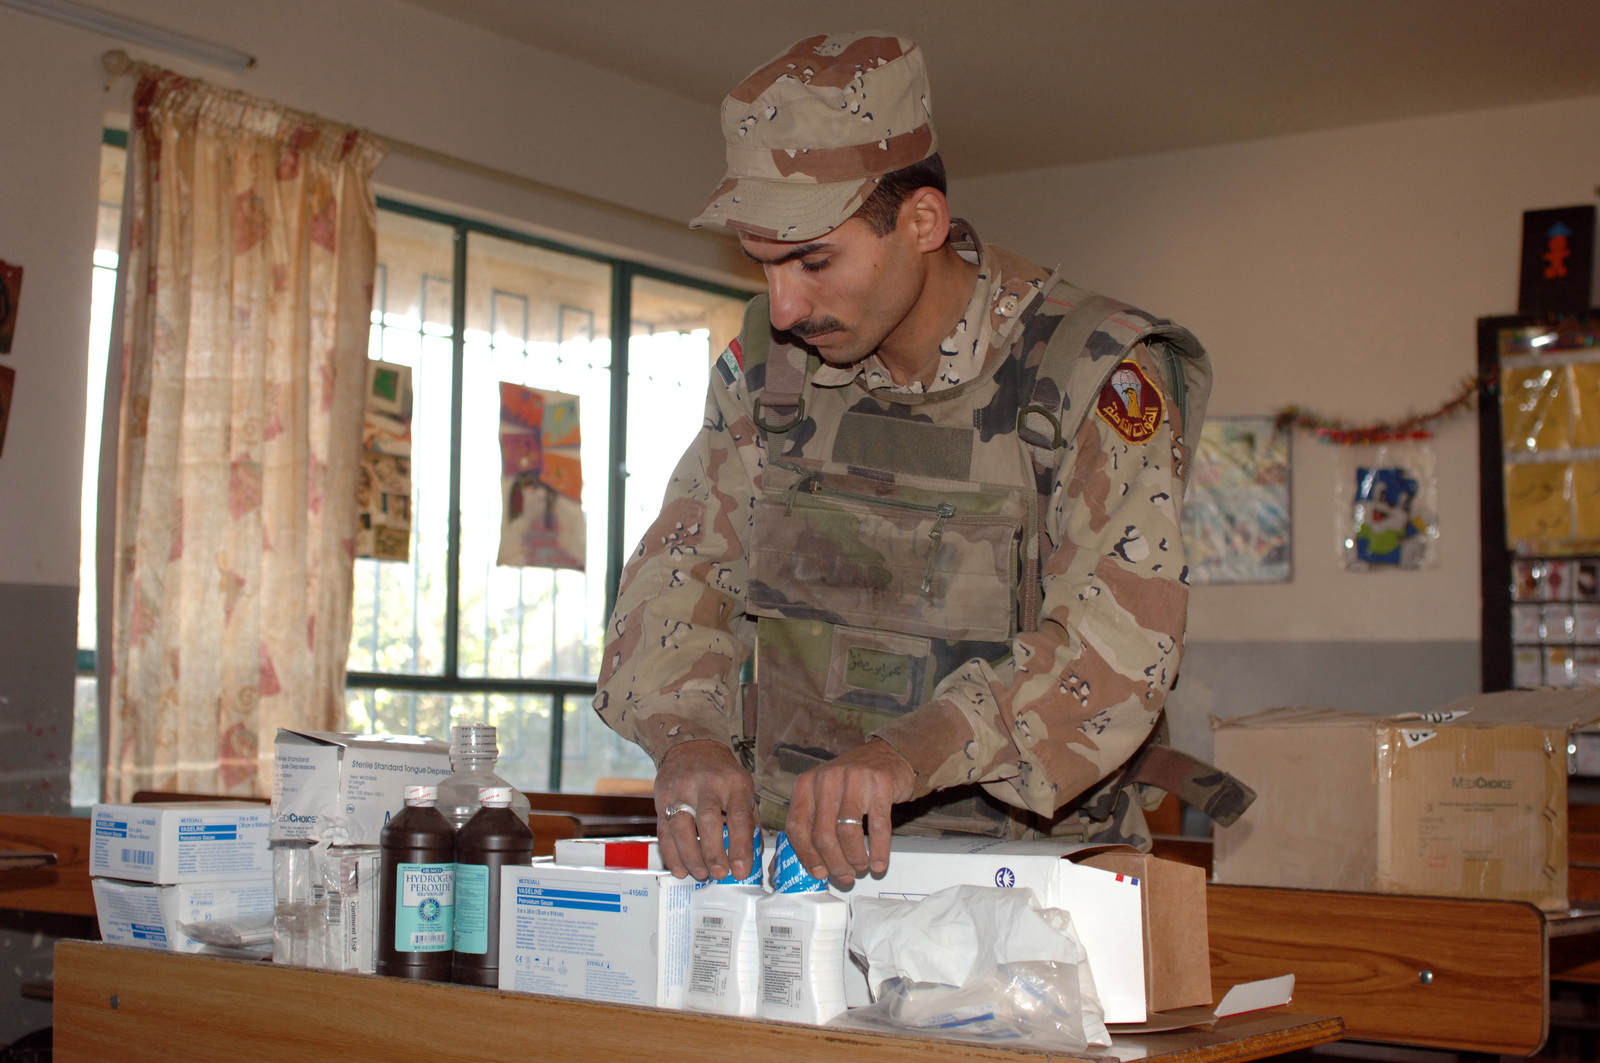 An Iraqi army soldier sets up various medicines at a medical civic action program (MEDCAP) for the local community, sponsored by Iraqi army soldiers from 1ST Battalion, 1ST Brigade, 6th Iraqi Division, at a school in western Baghdad, Iraq, Jan. 17, 2006. The purpose of the MEDCAP is to assist the community with free on the spot medical aid and provide much needed medicine to those who were previously unable to get medical treatment. (U.S. Army photo by STAFF SGT. Kevin L. Moses Sr.) (Released)